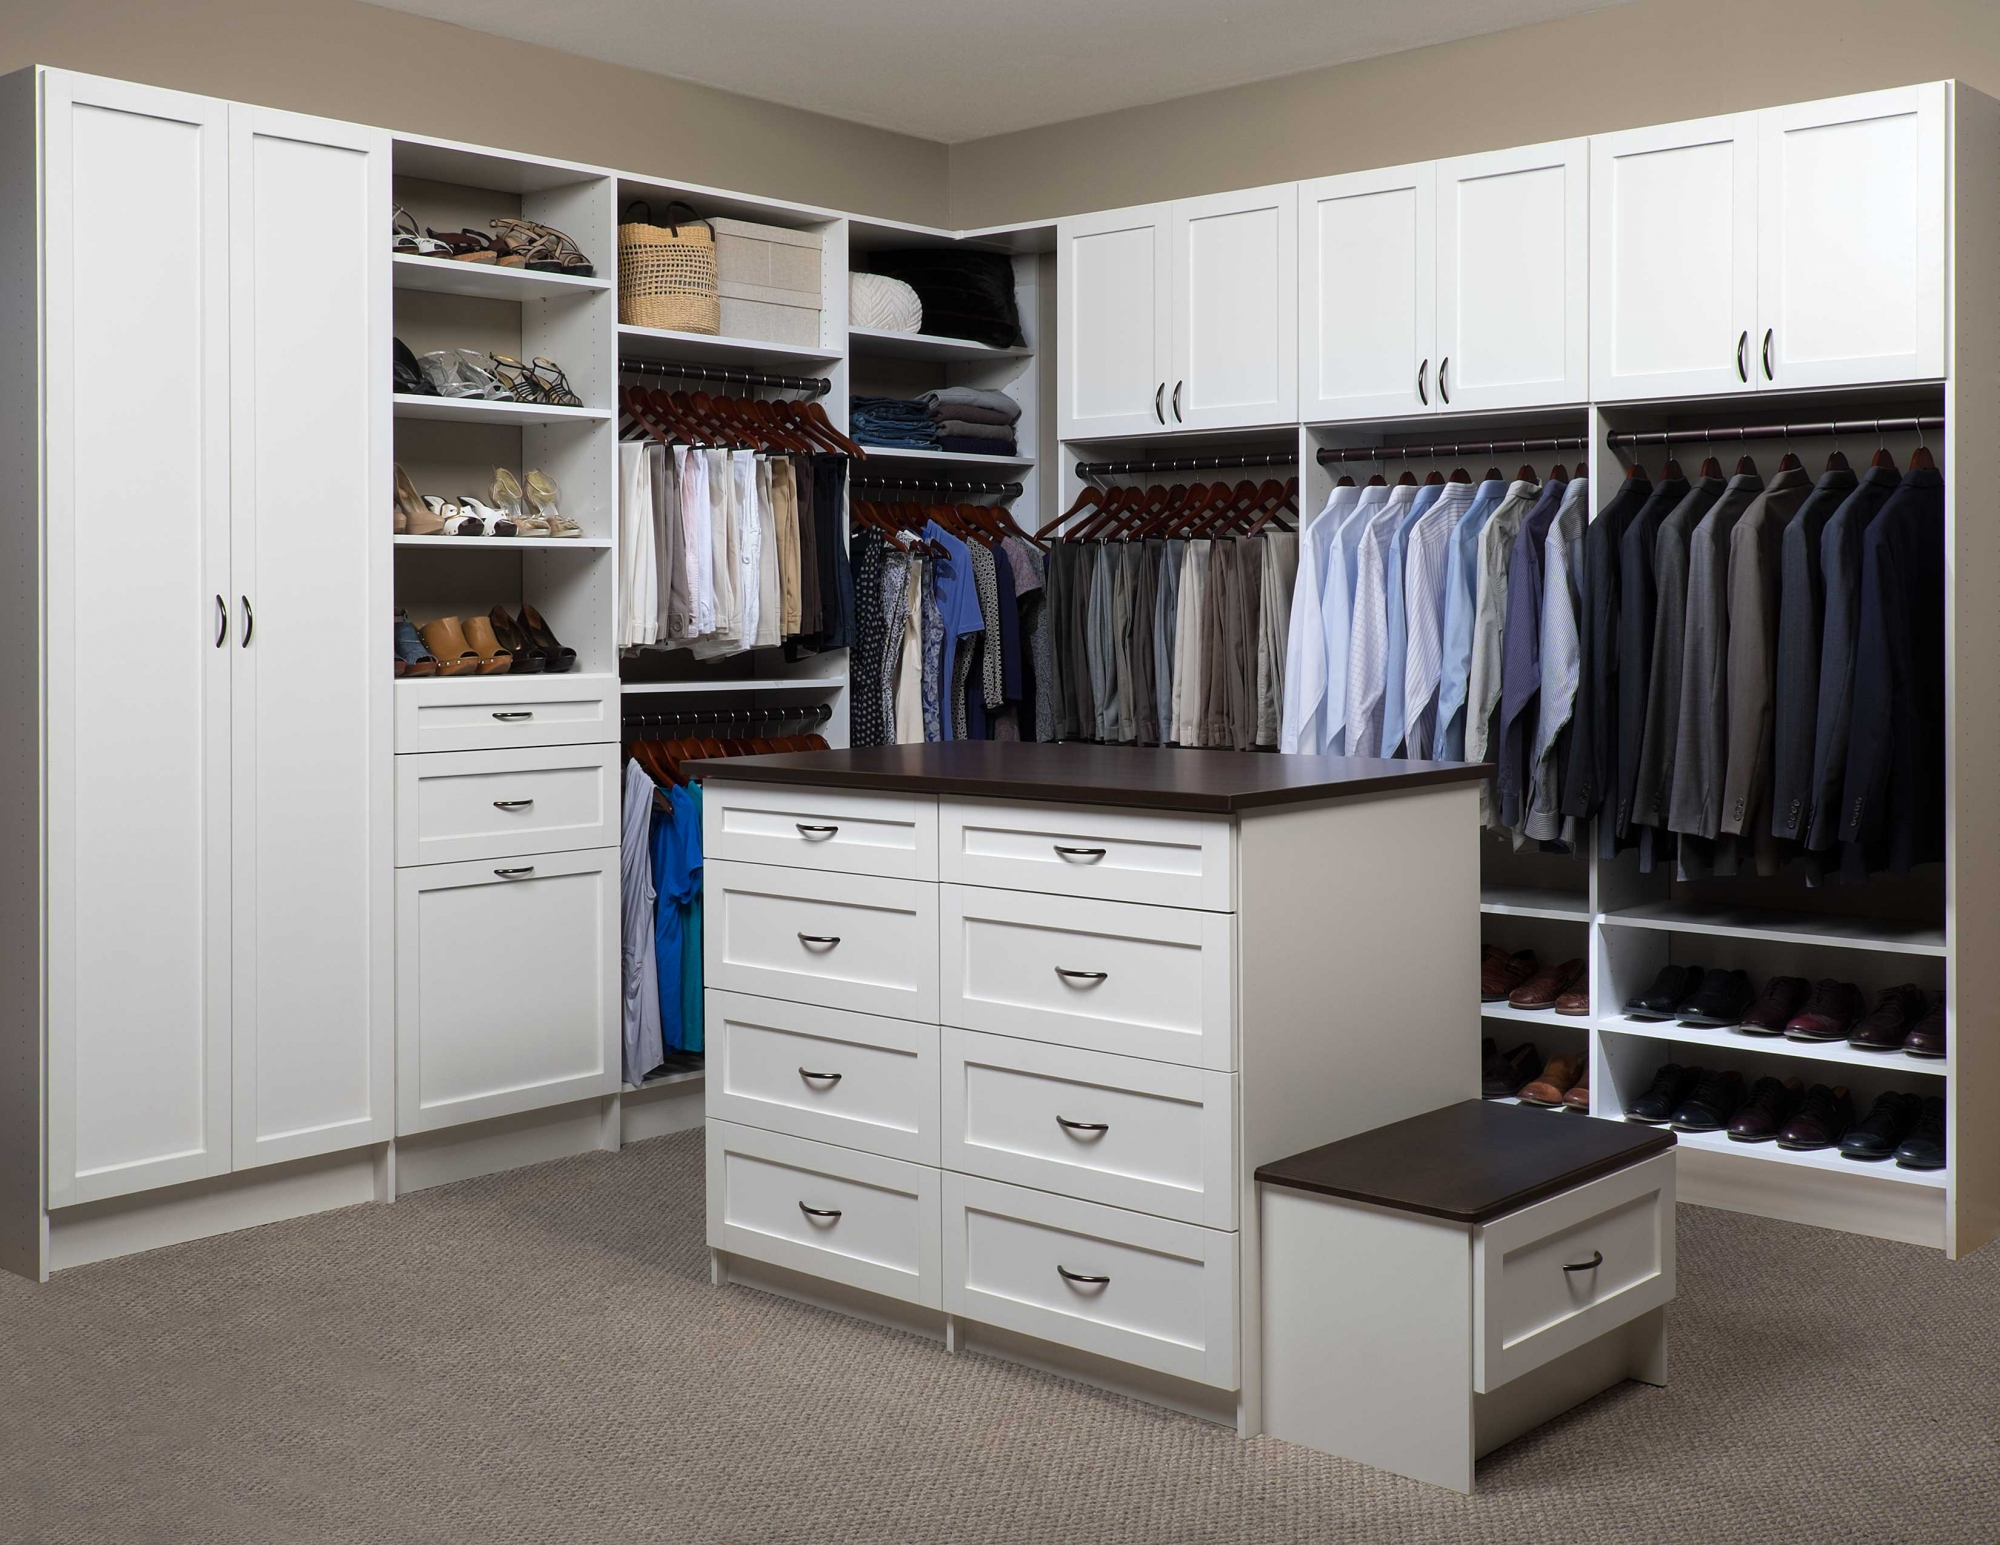 Our Dedication To Customer Service Begins With A No Cost Consultation;  During Which, We Will Show You Many Options For Increasing The Space In  Your Closets.